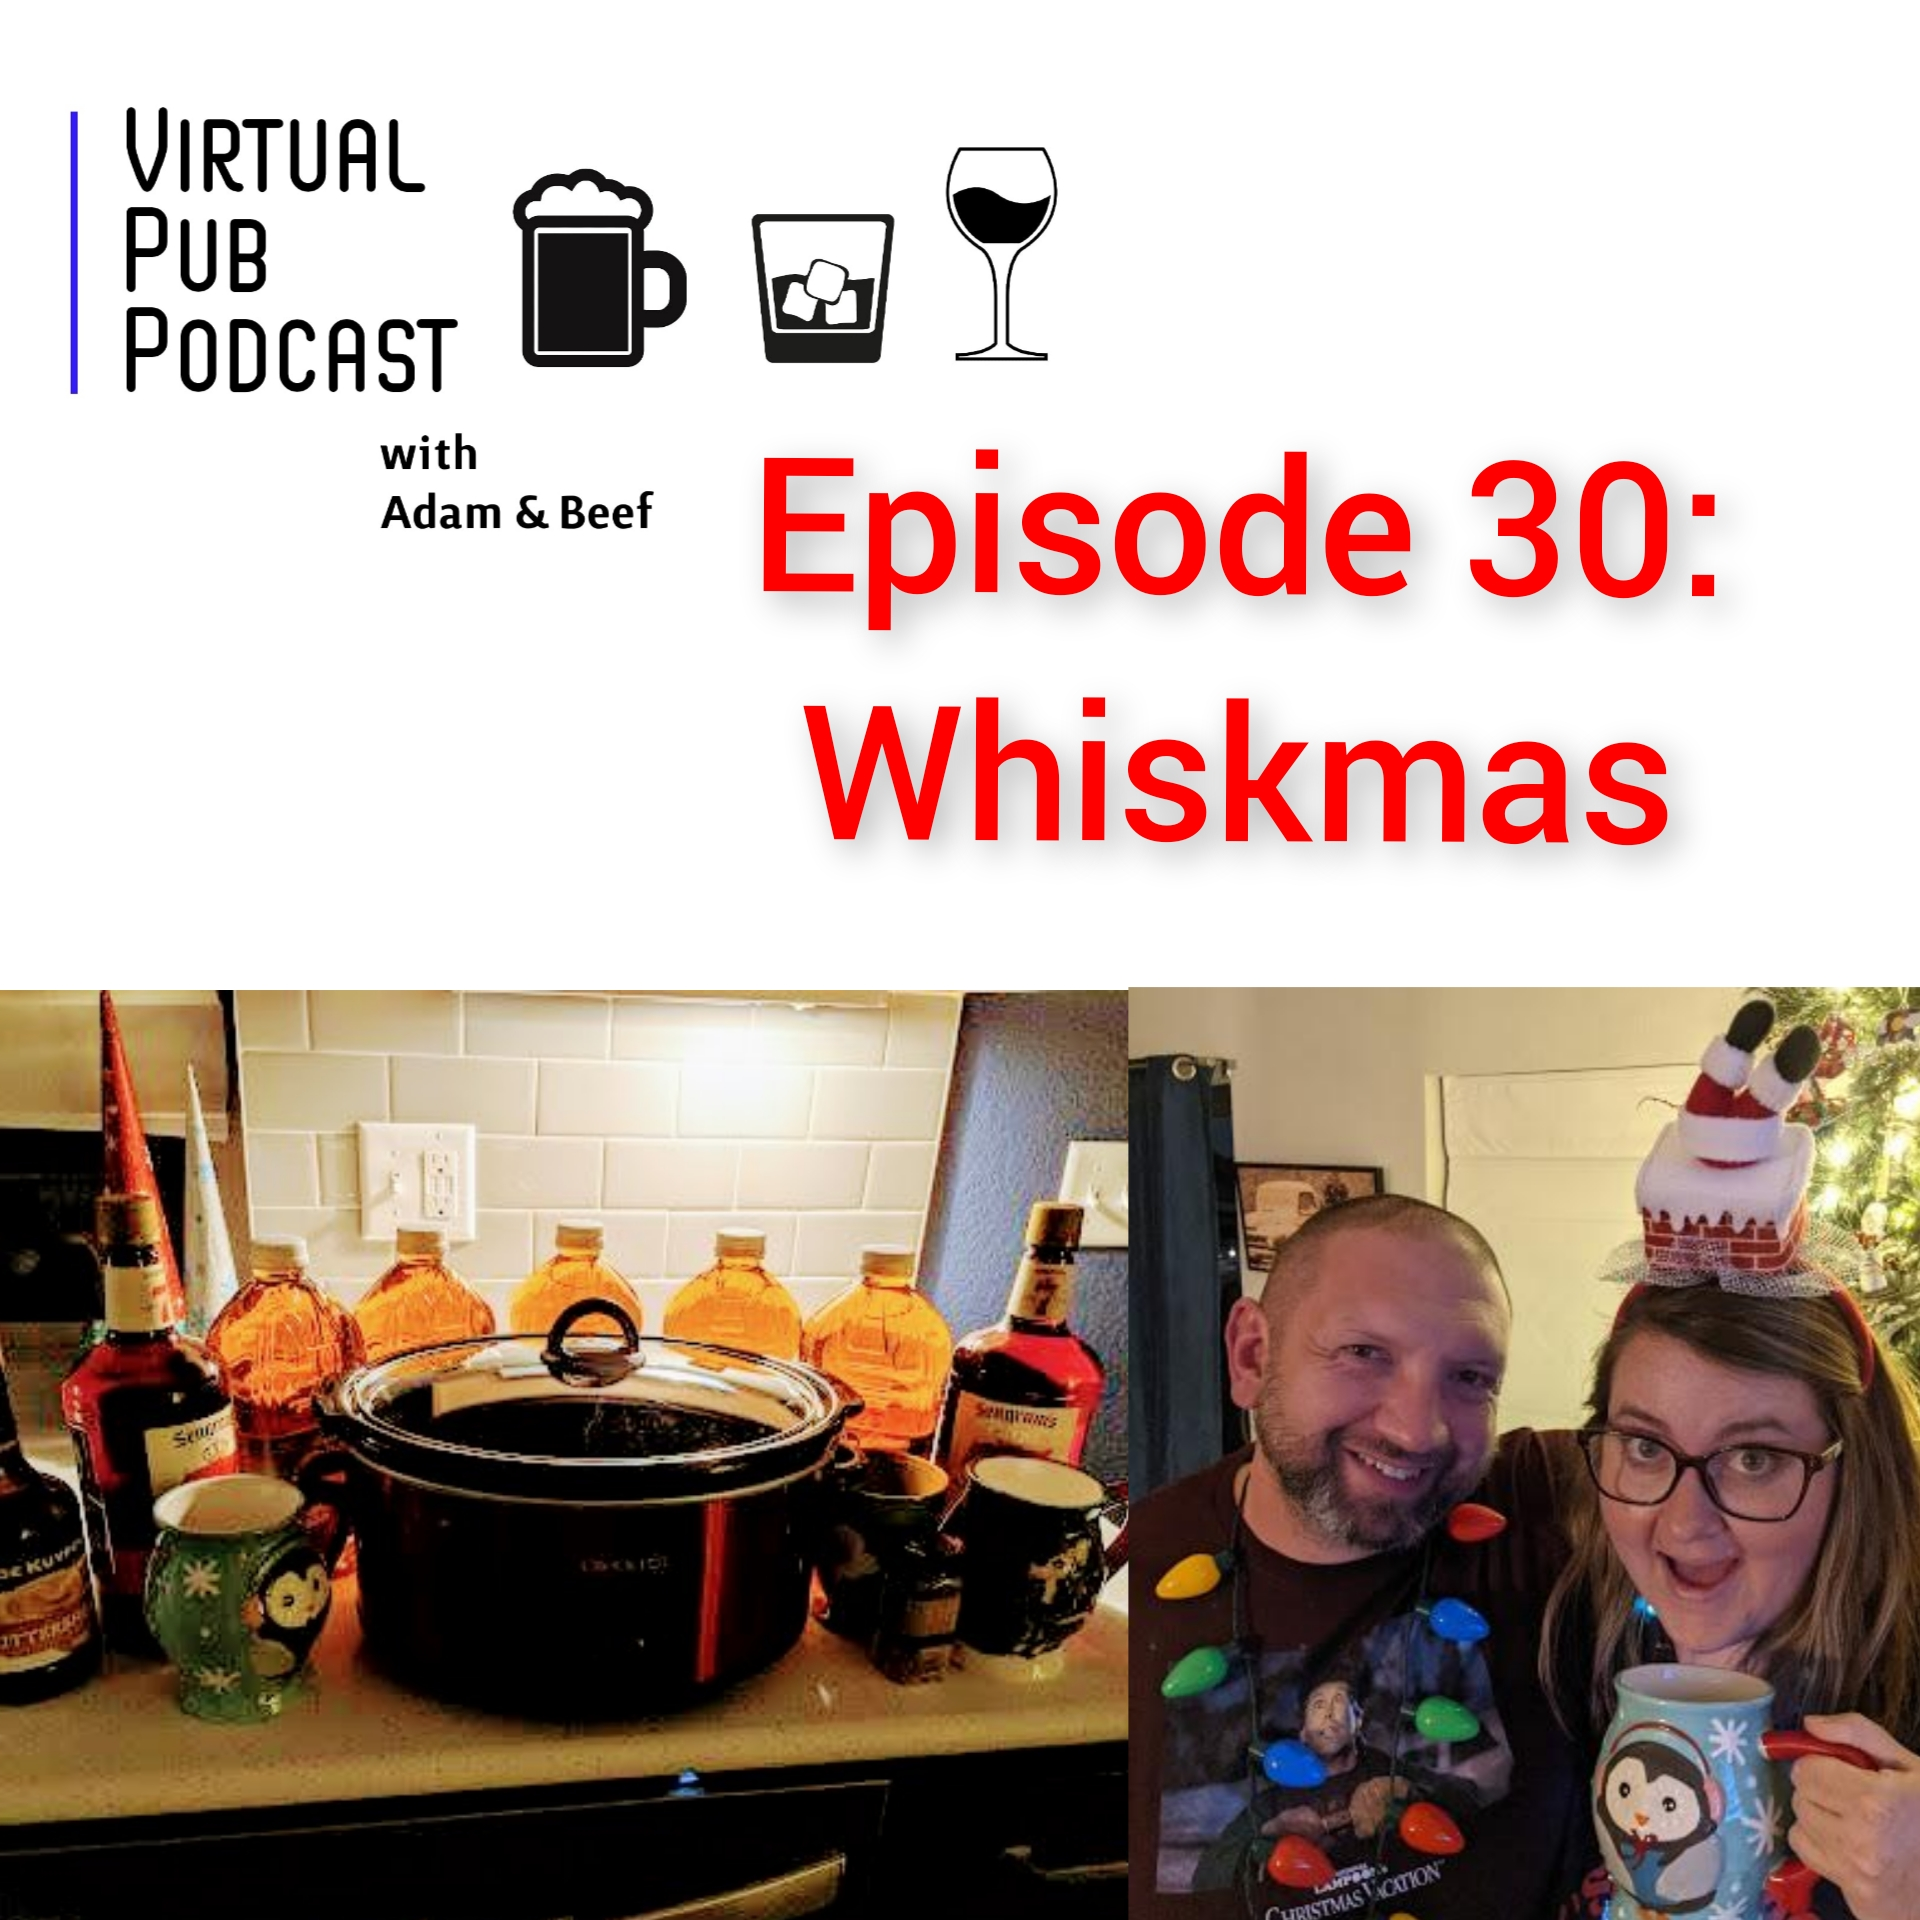 Virtual Pub Podcast